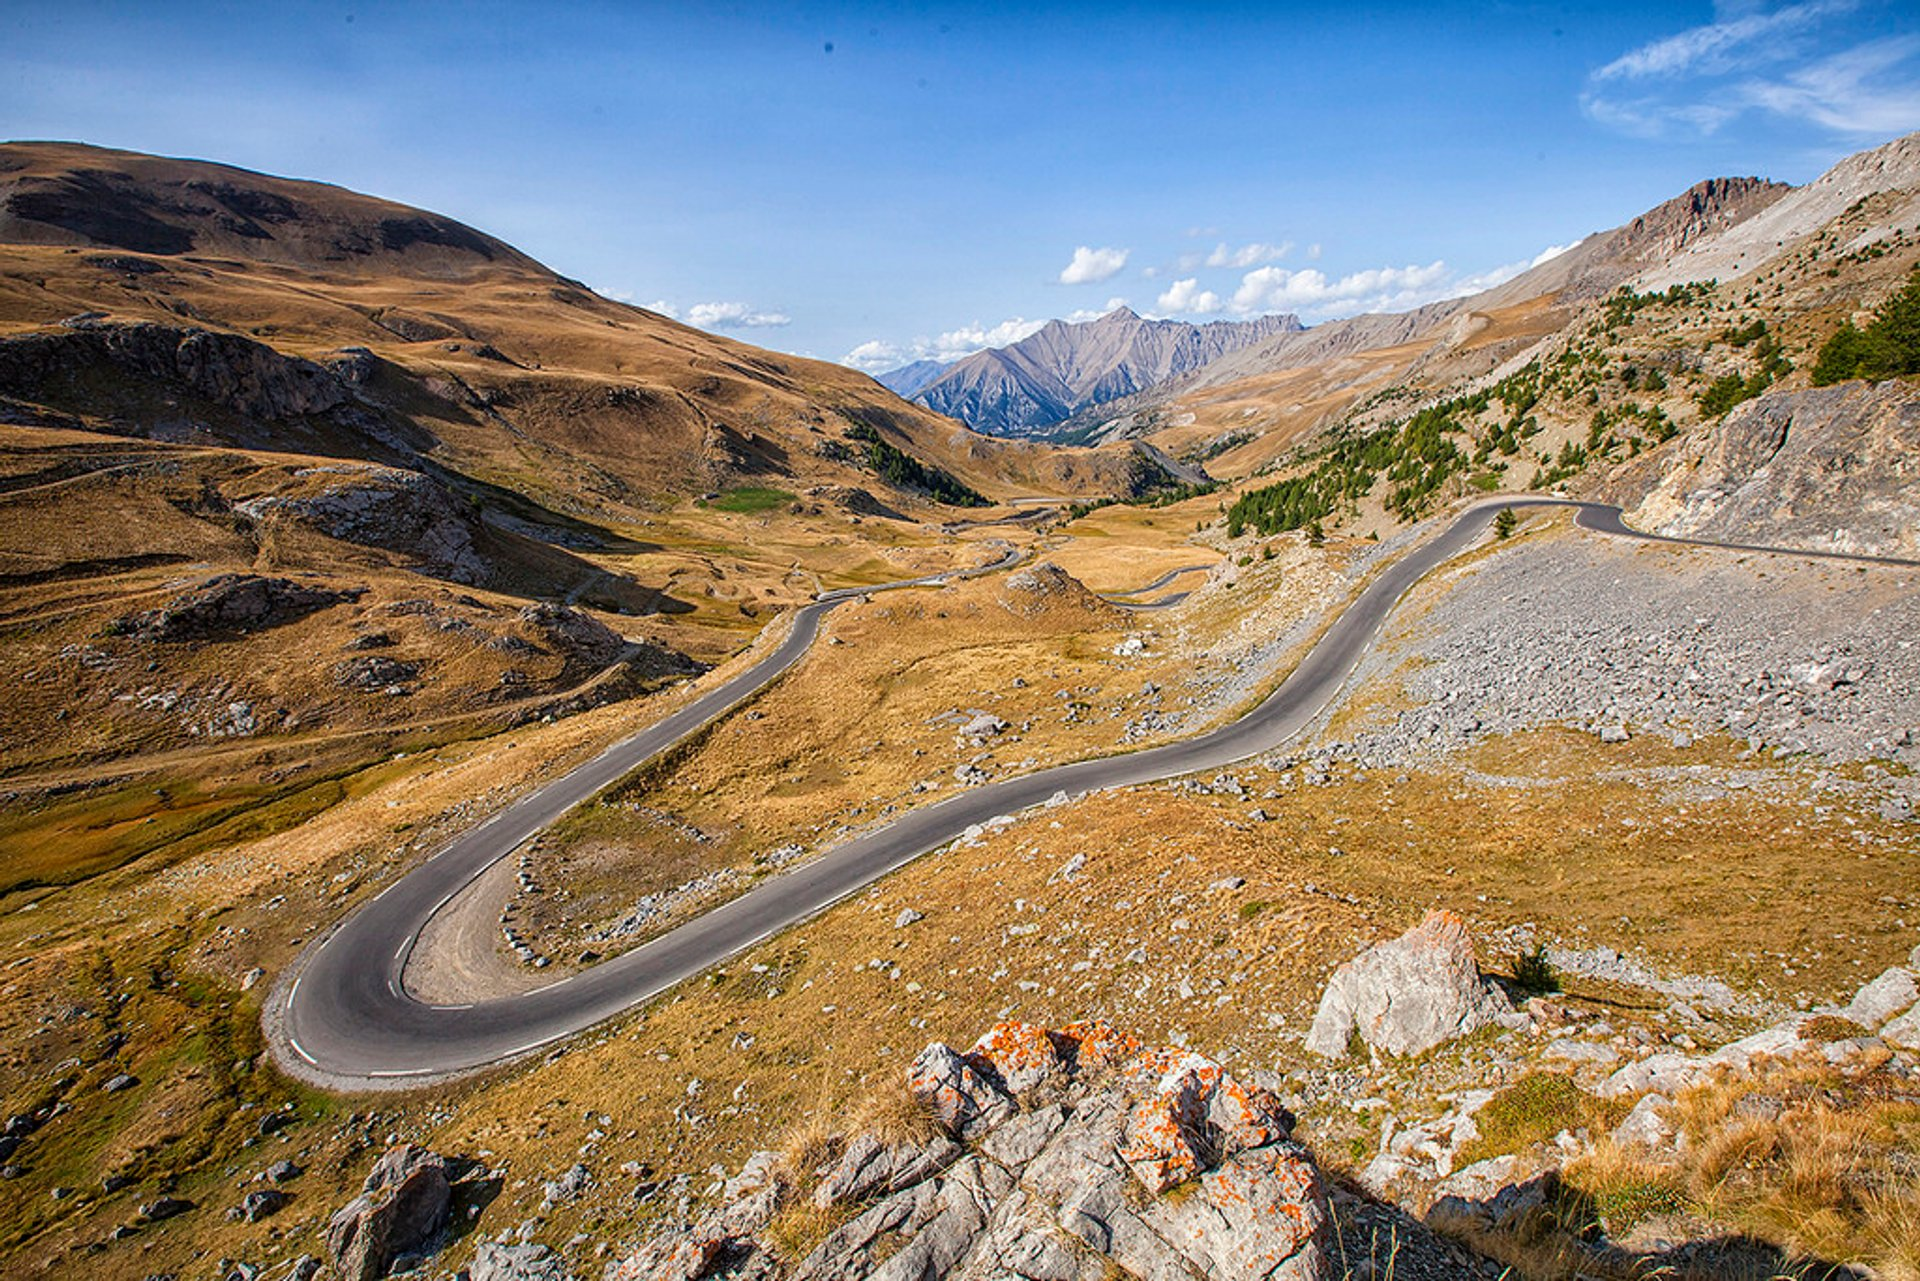 Col de la Bonette in France 2020 - Best Time